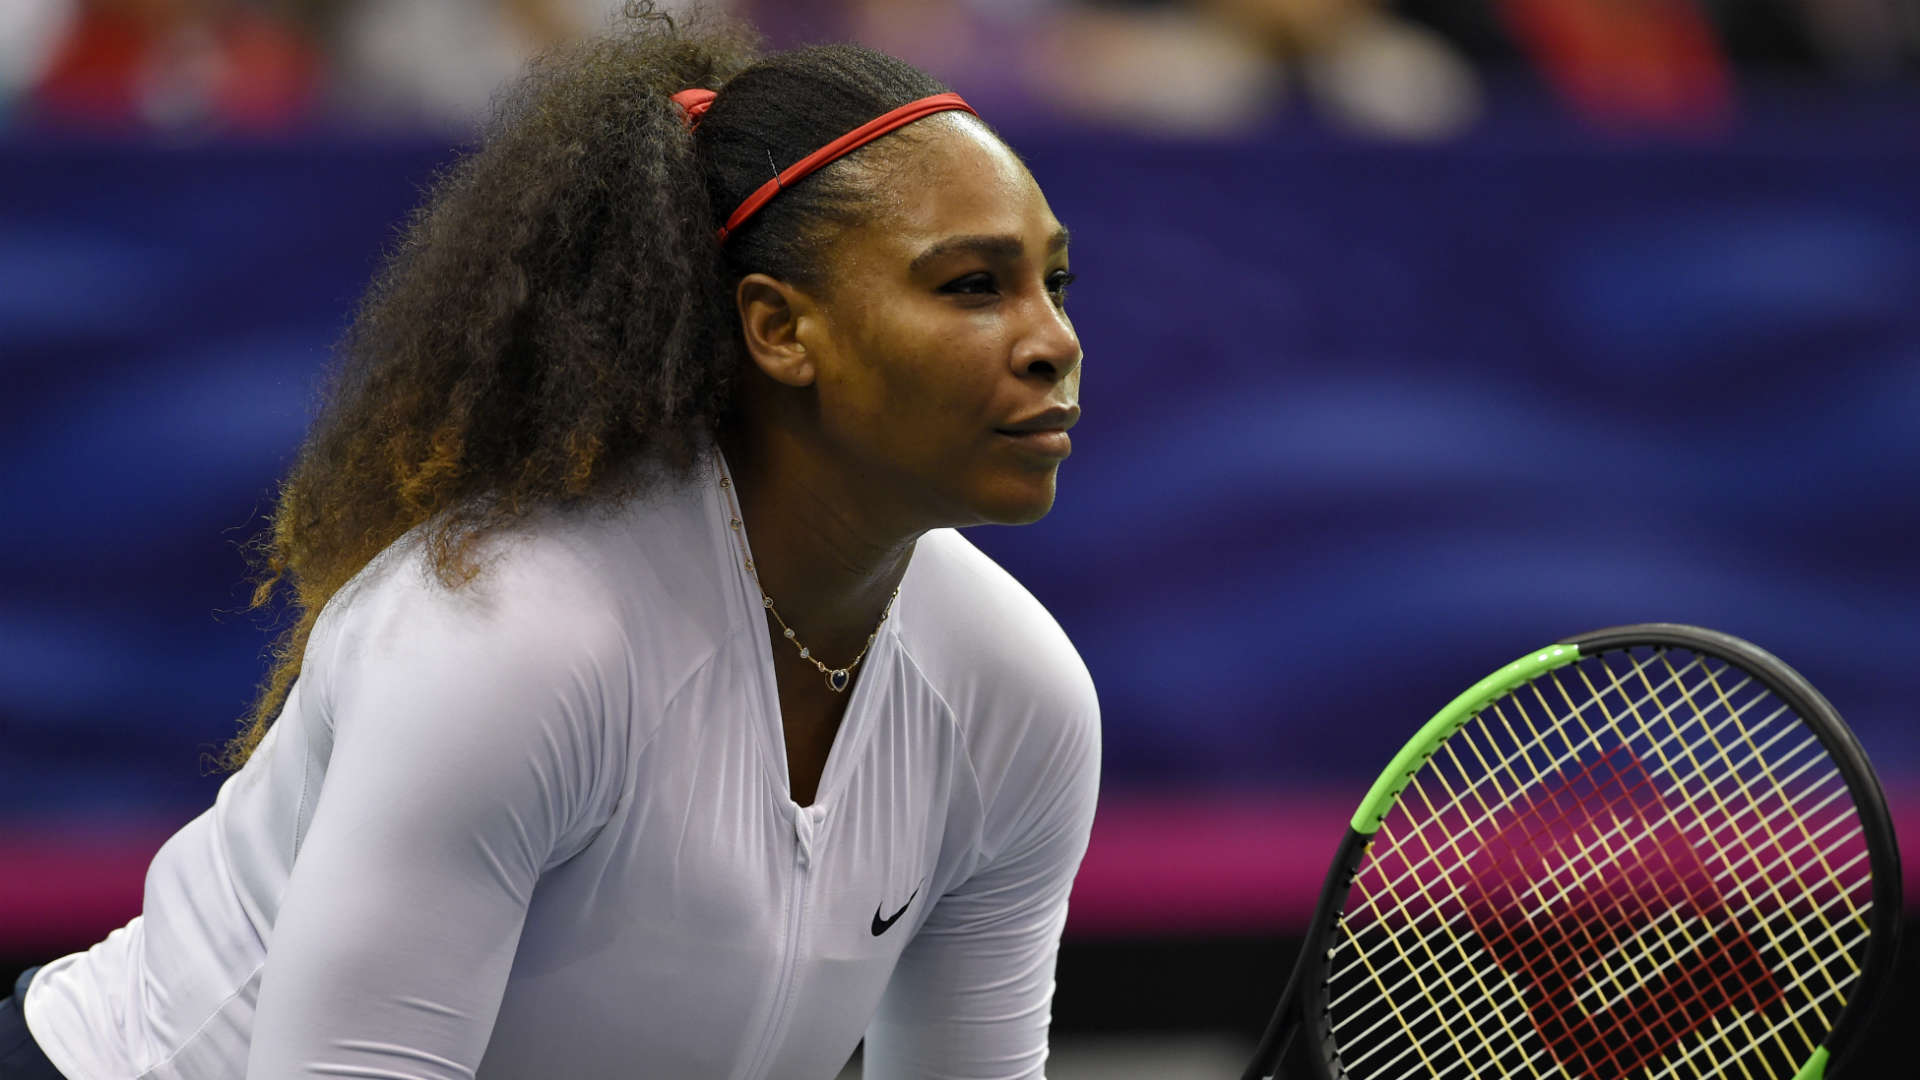 Serena Williams' New Ad Has Us Feeling Totally Empowered